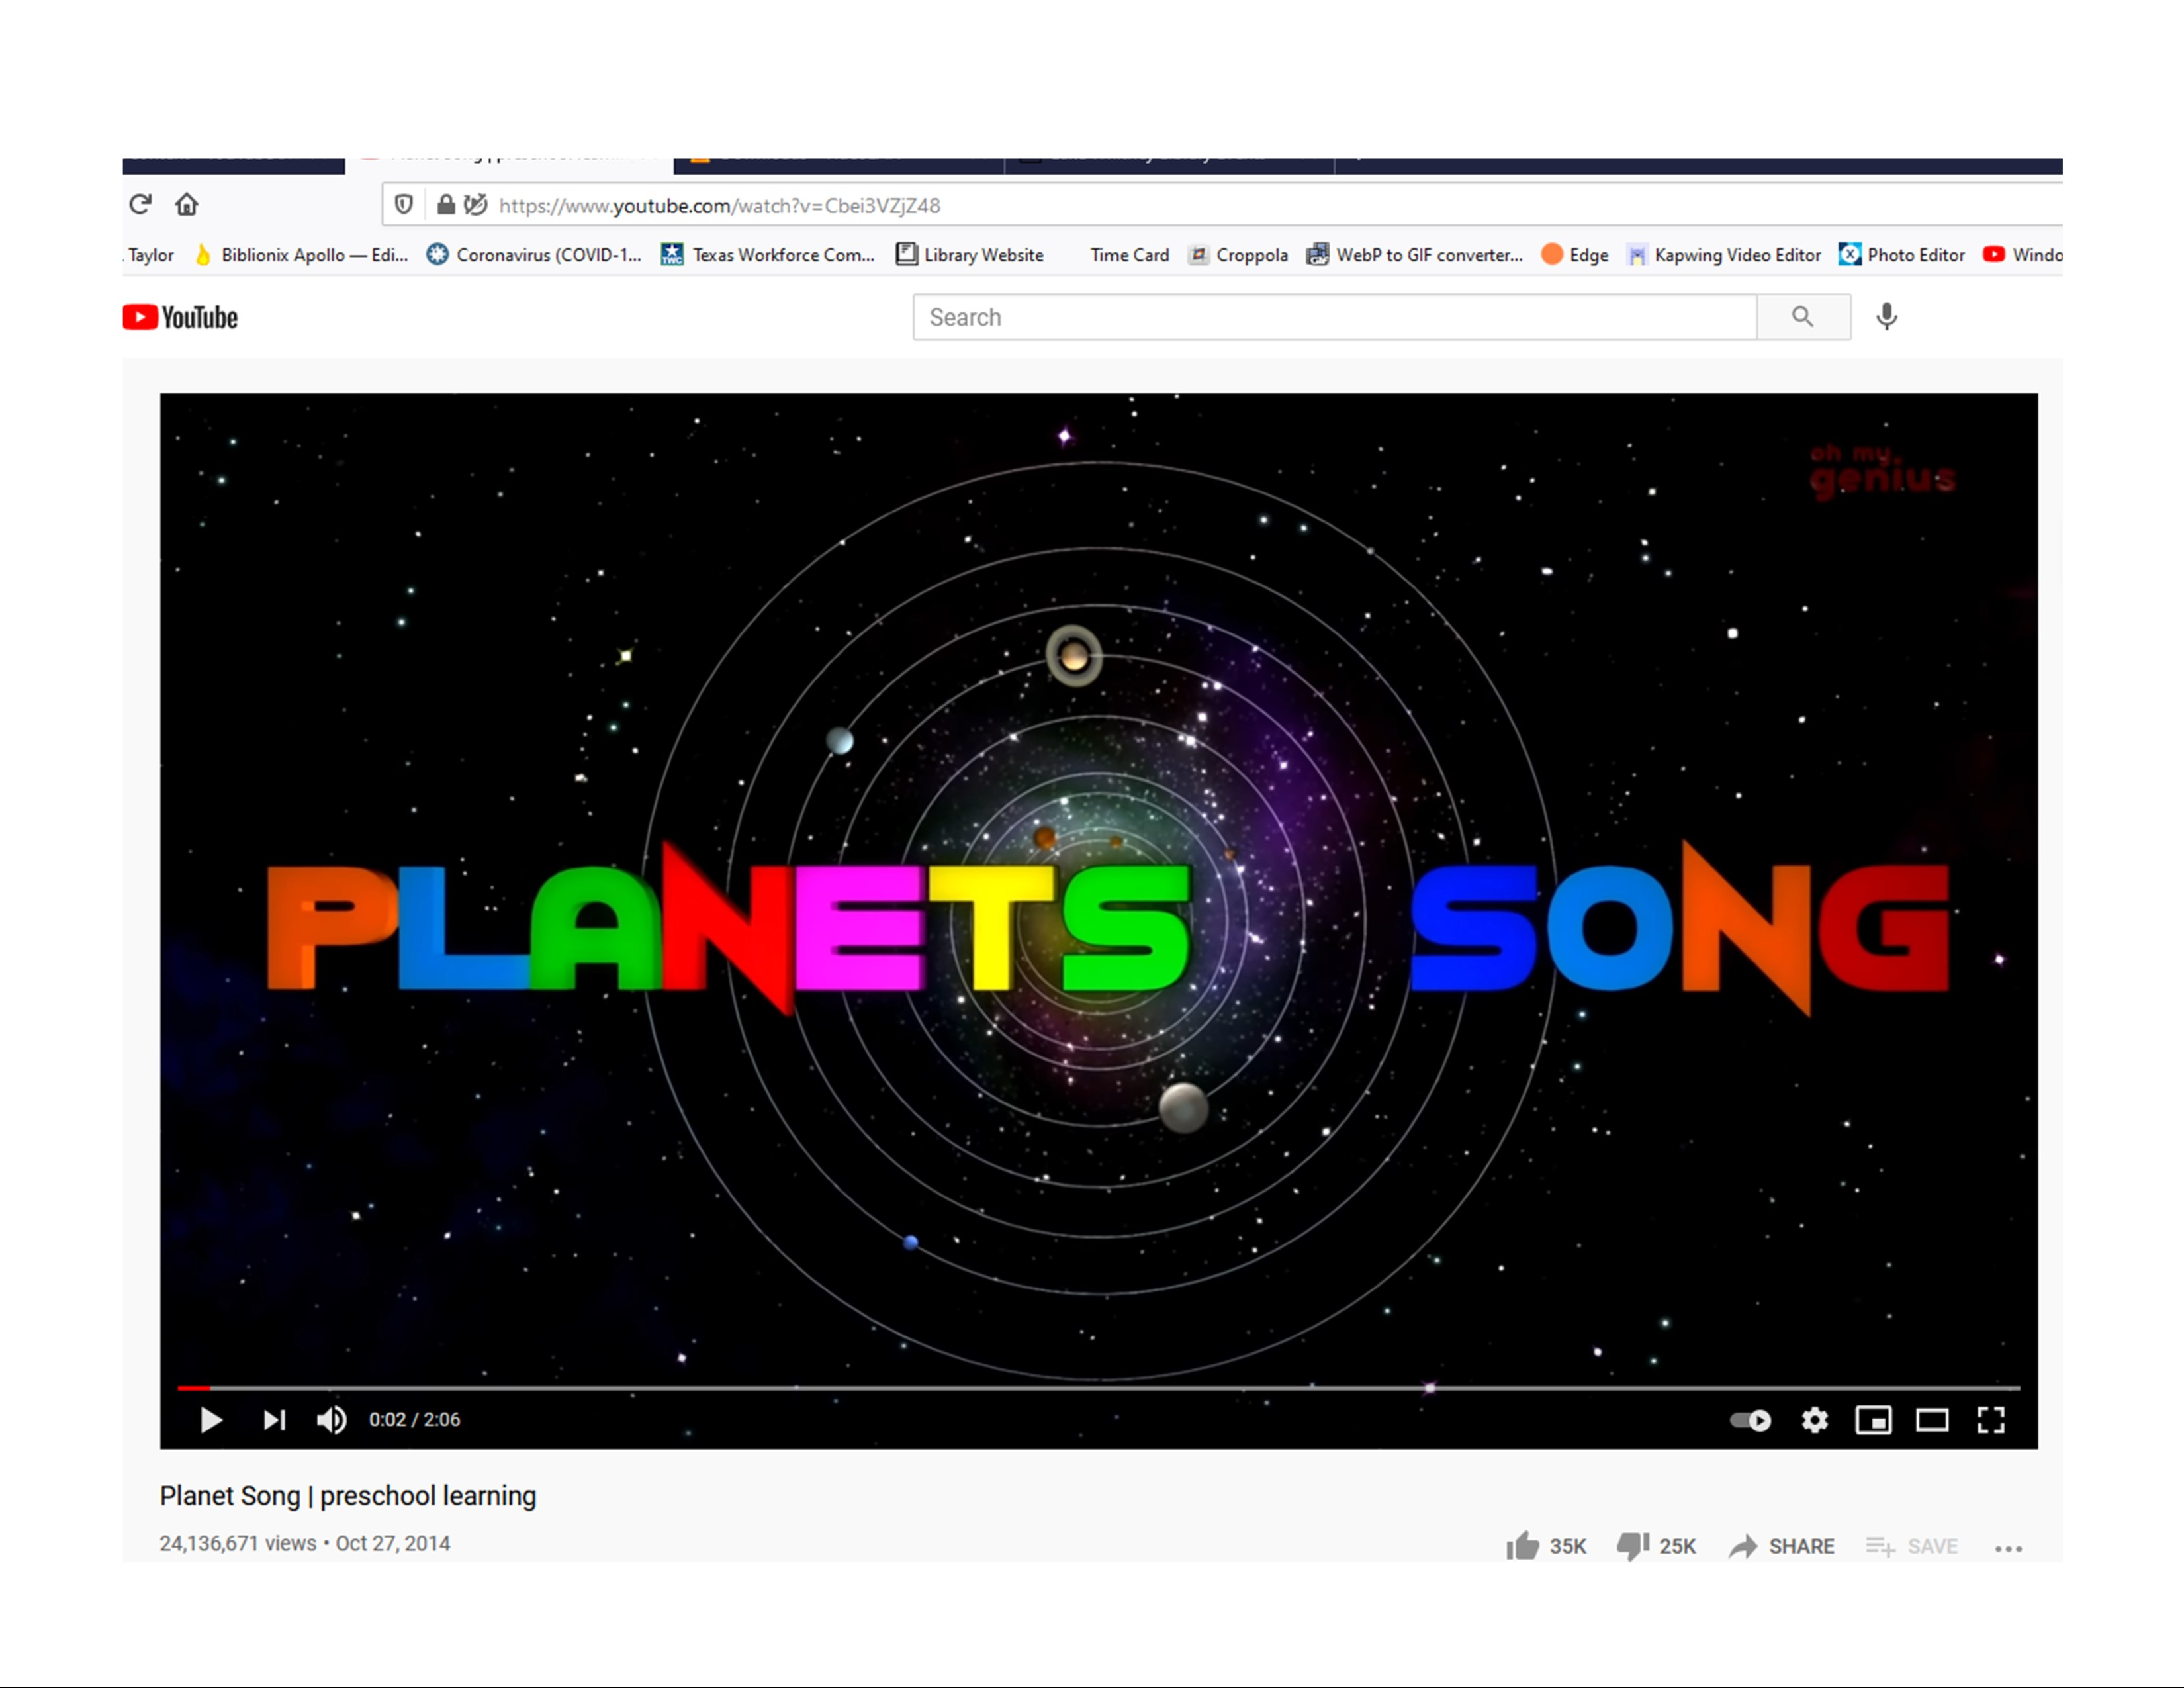 Planets song.jpg